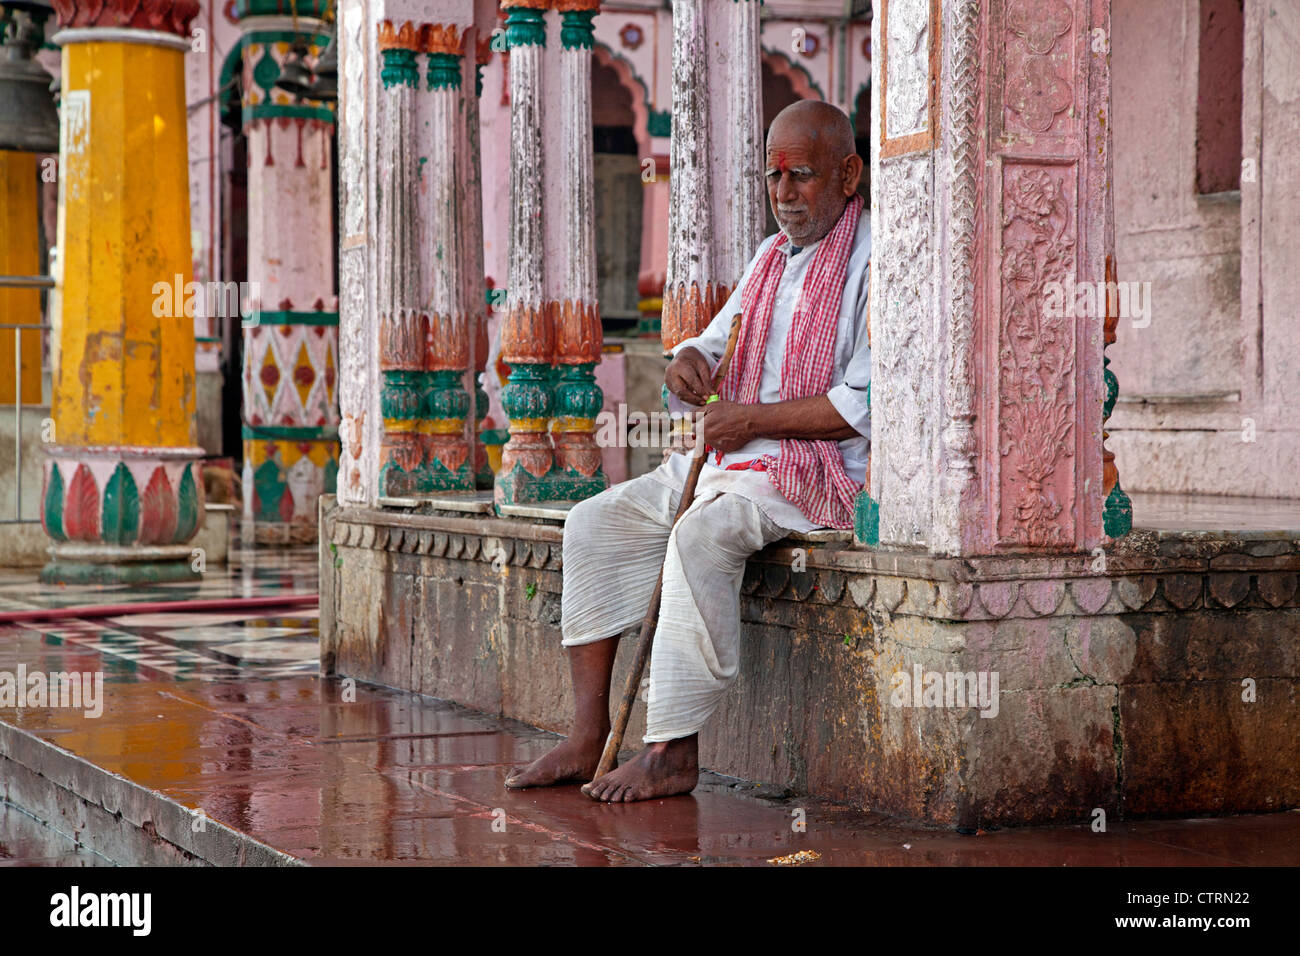 Indian man in traditional dress at bathhouse in Mathura, Uttar Pradesh, India - Stock Image